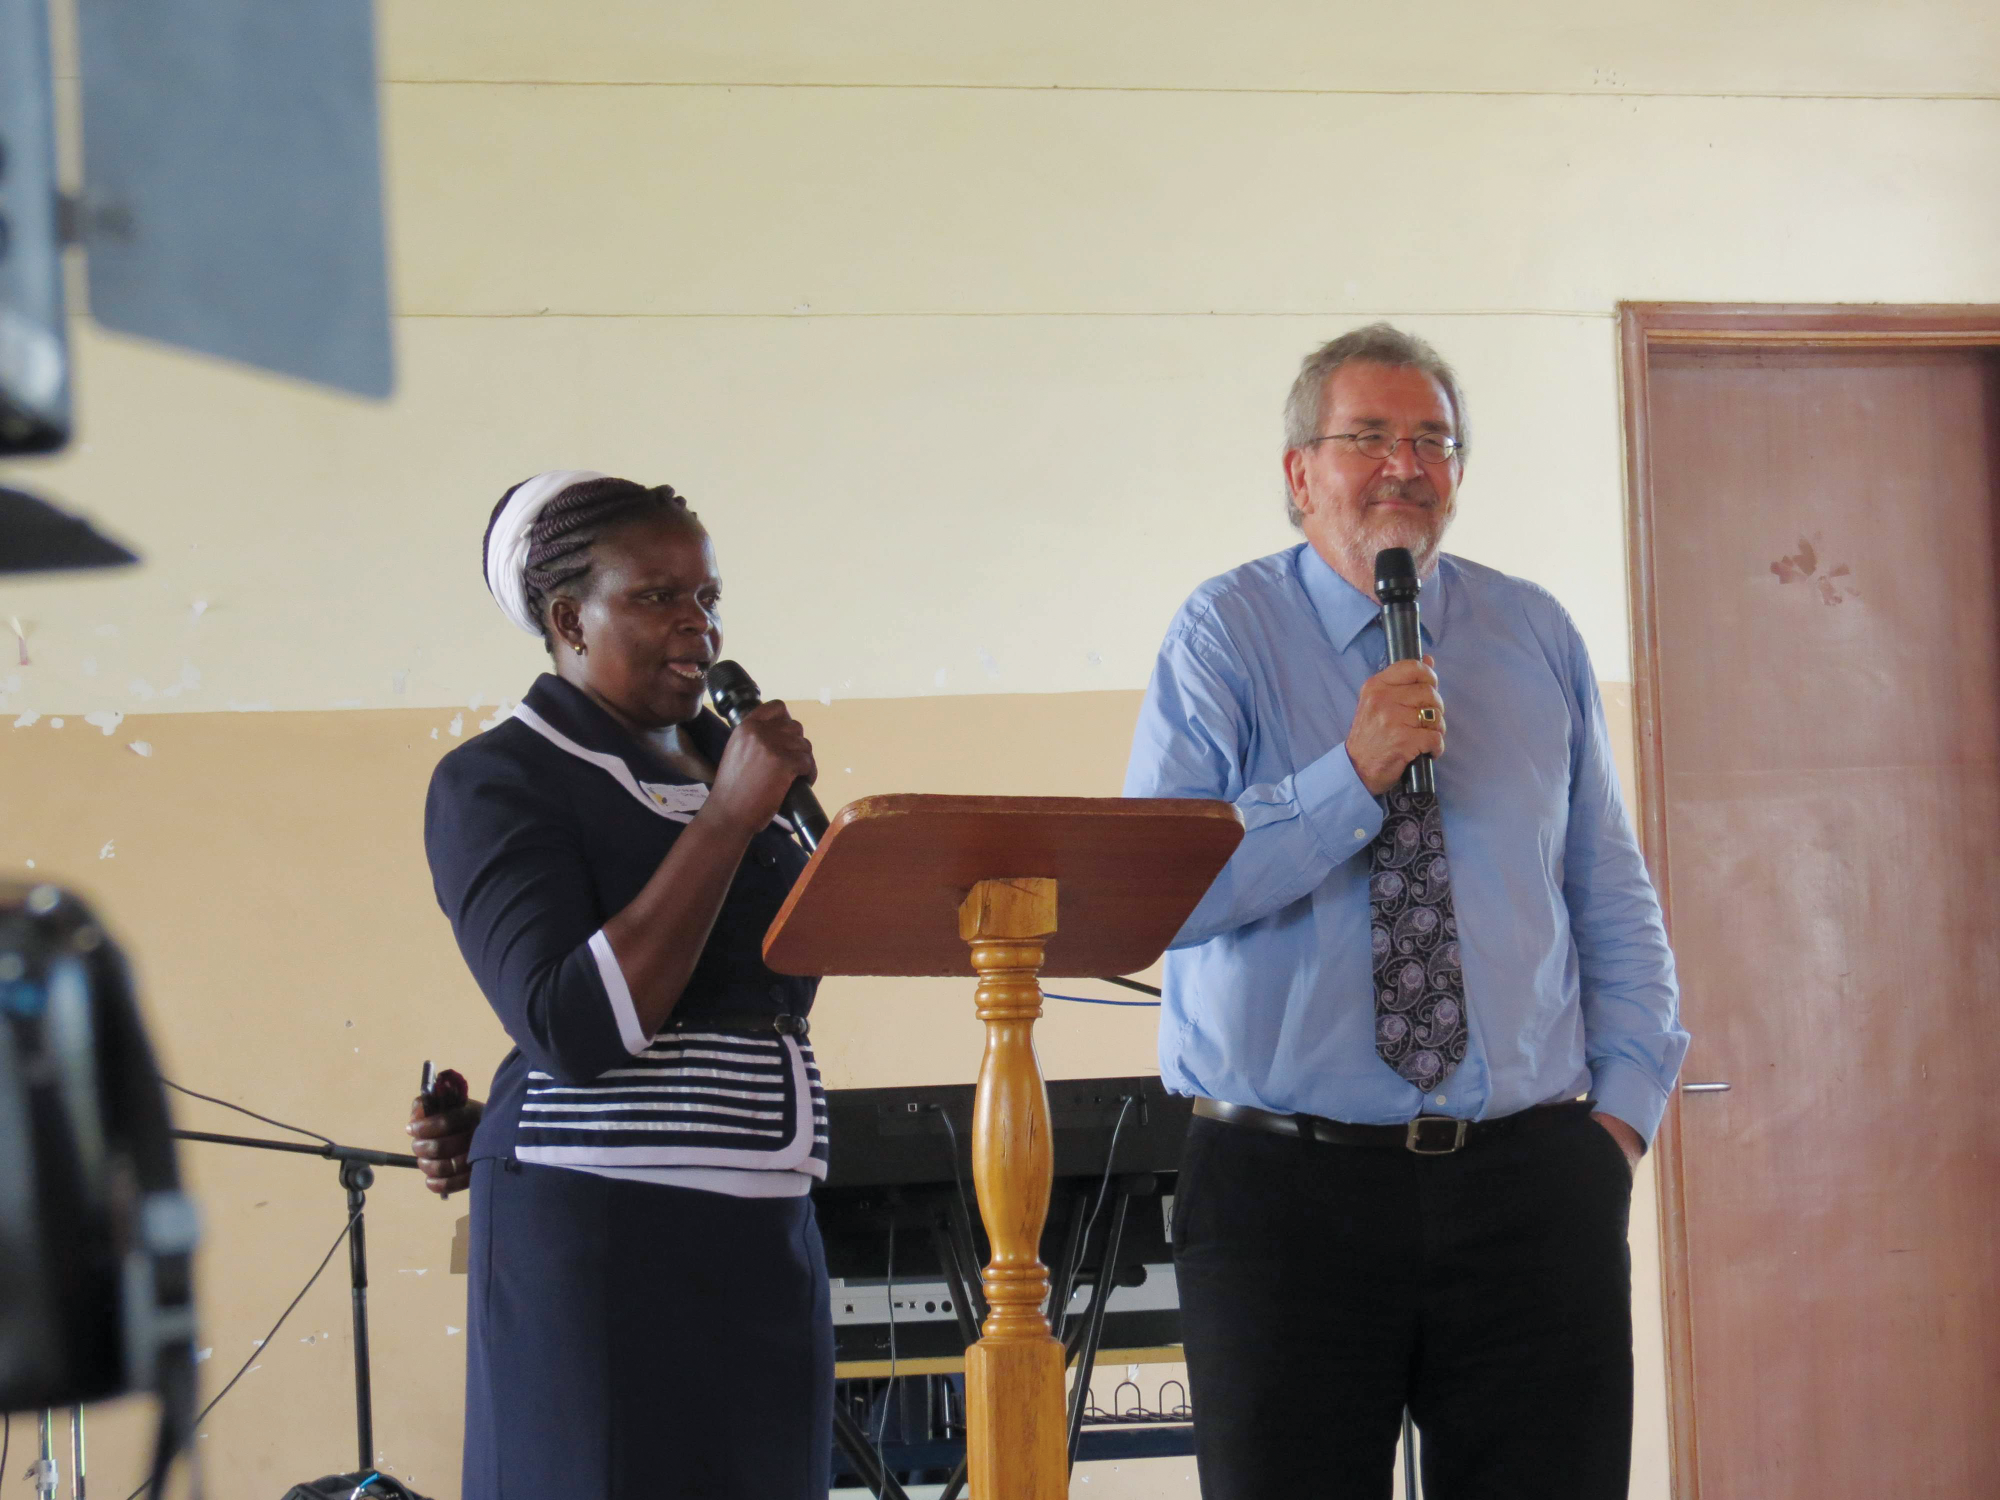 Preaching at Renewal 2027: Alfred Neufeld (r) with Swahili translator Caren Okello. Photo: Len Rempel